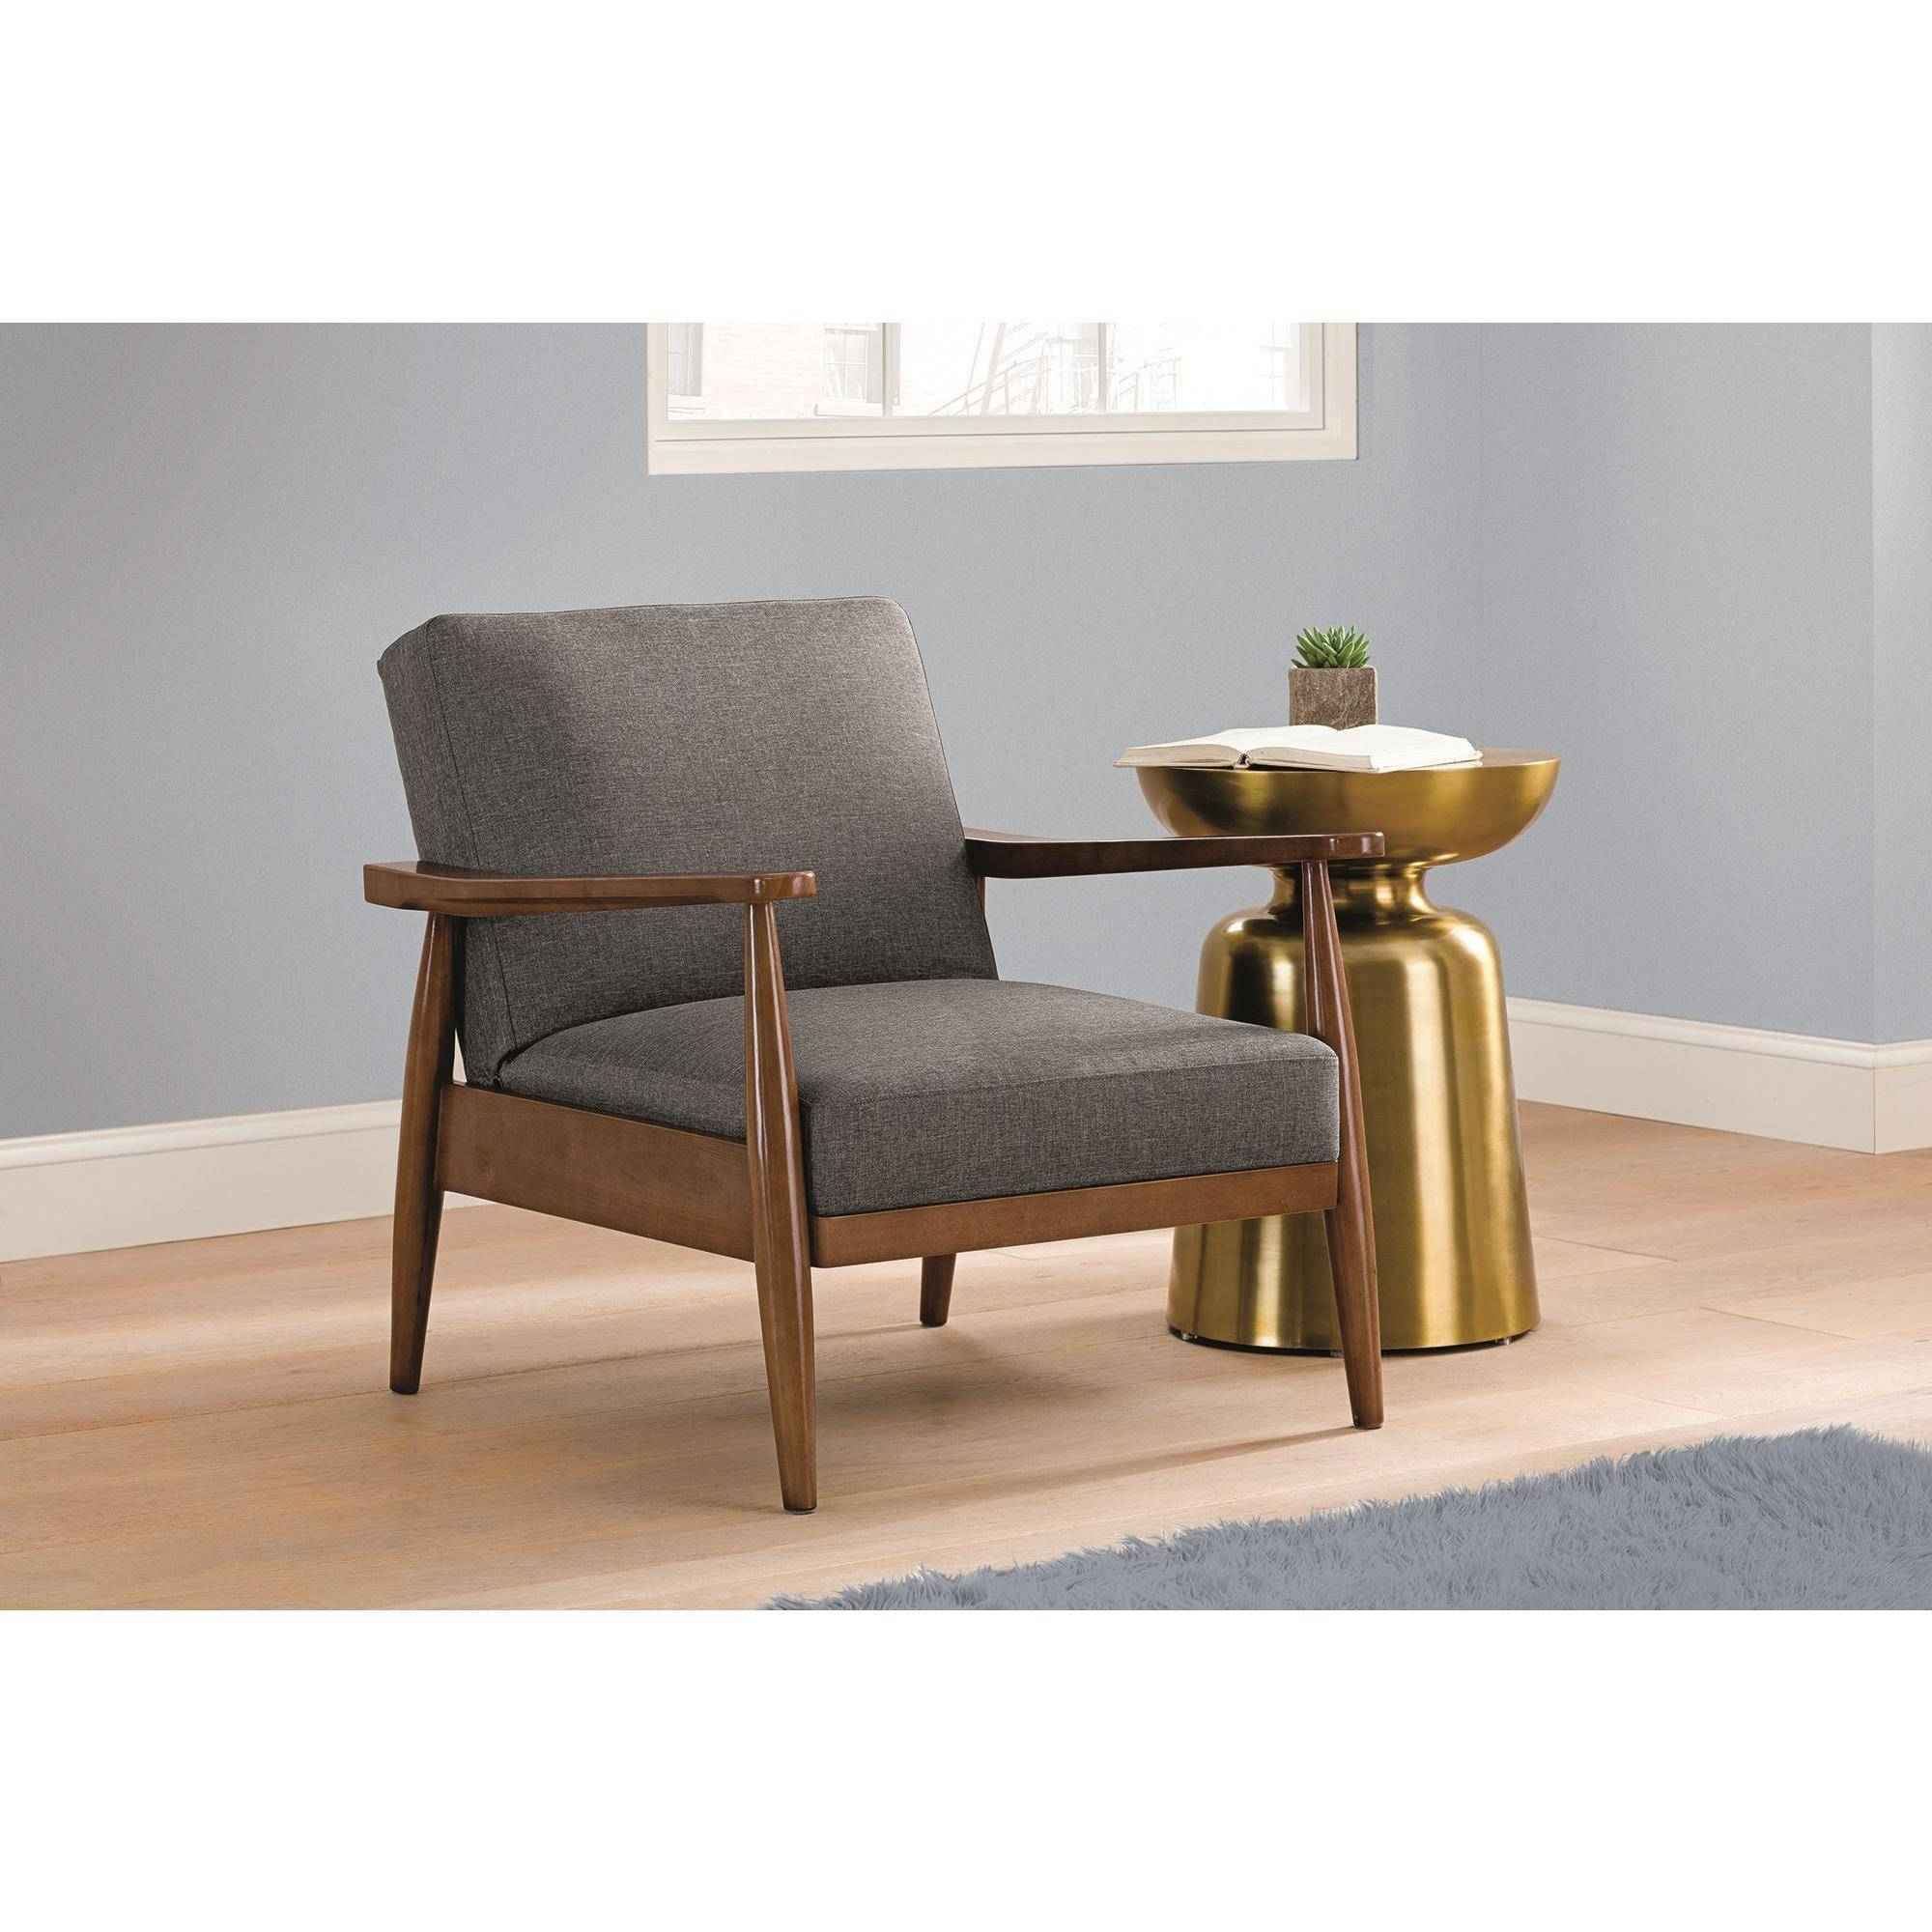 Better Homes and Gardens Flynn Mid-Century Chair Wood with Linen Upholstery - Walmart.com  sc 1 st  Walmart & Better Homes and Gardens Flynn Mid-Century Chair Wood with Linen ...